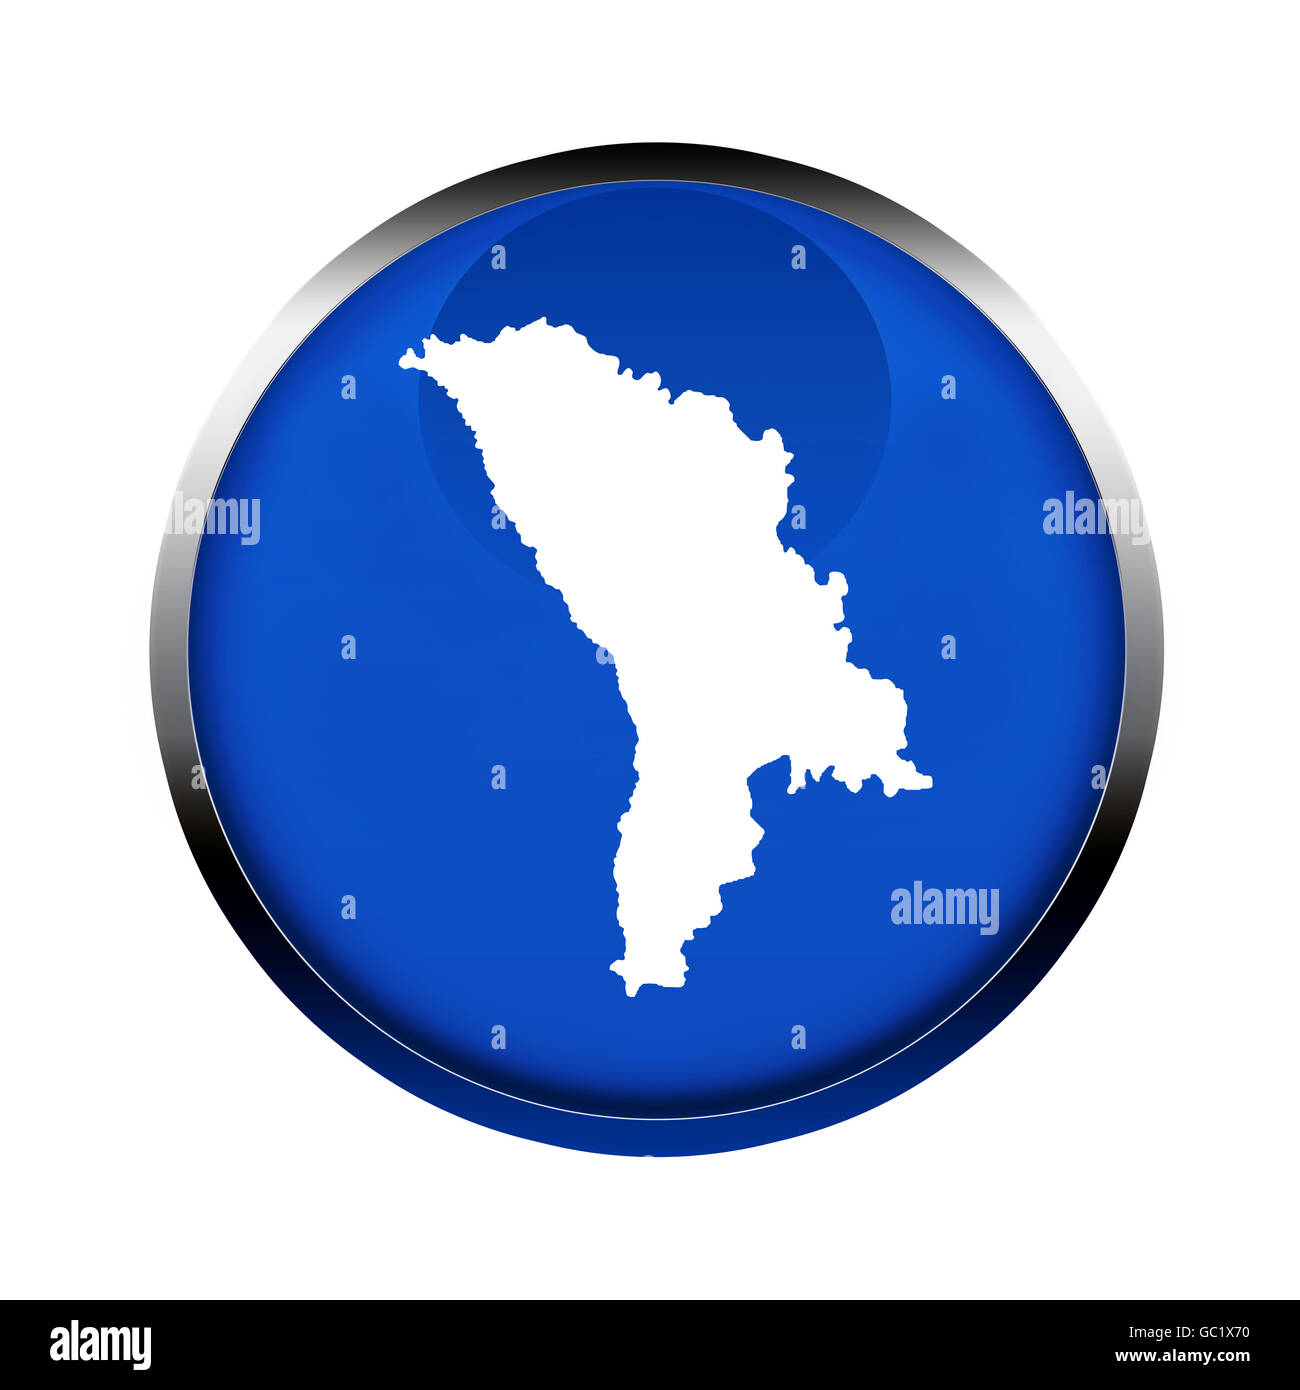 Moldova map button in the colors of the European Union. - Stock Image